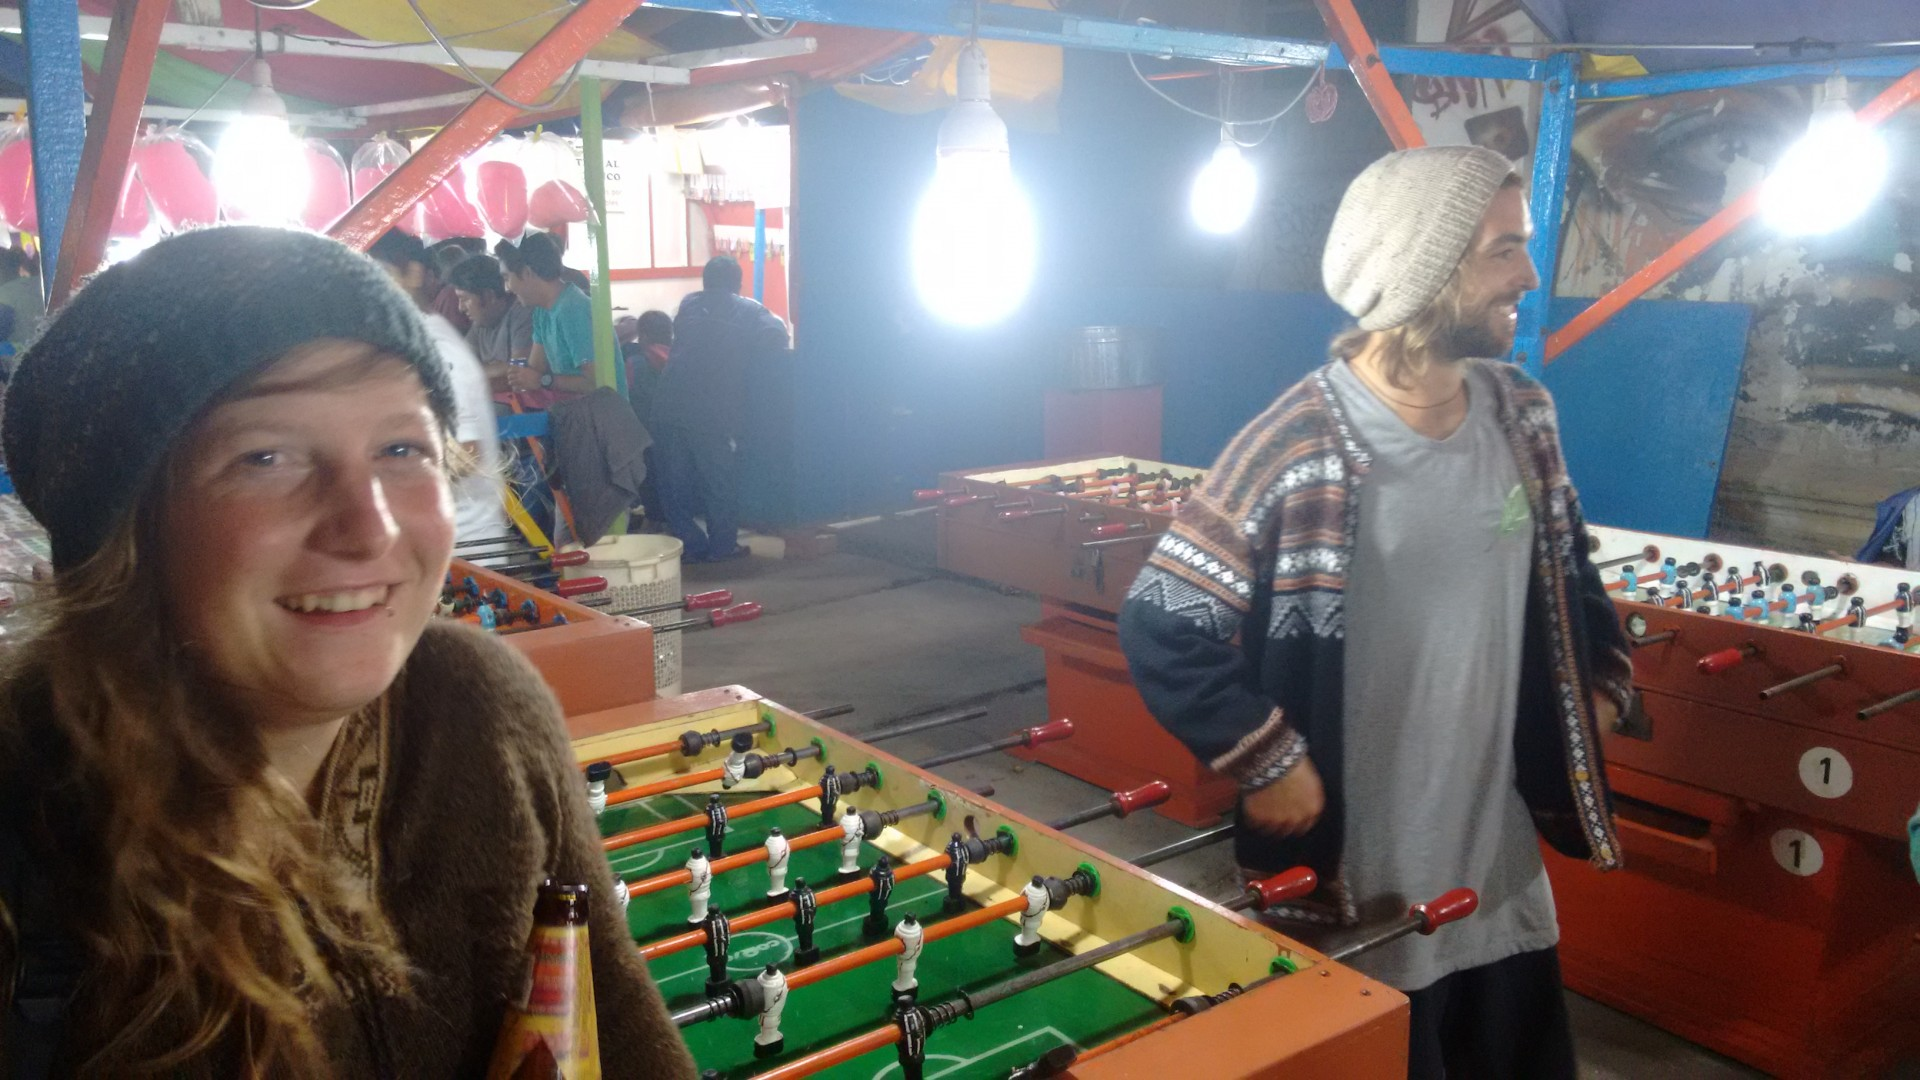 Foosball in Huanchaco. We were avidly followed by some very interested Peruvian kids.